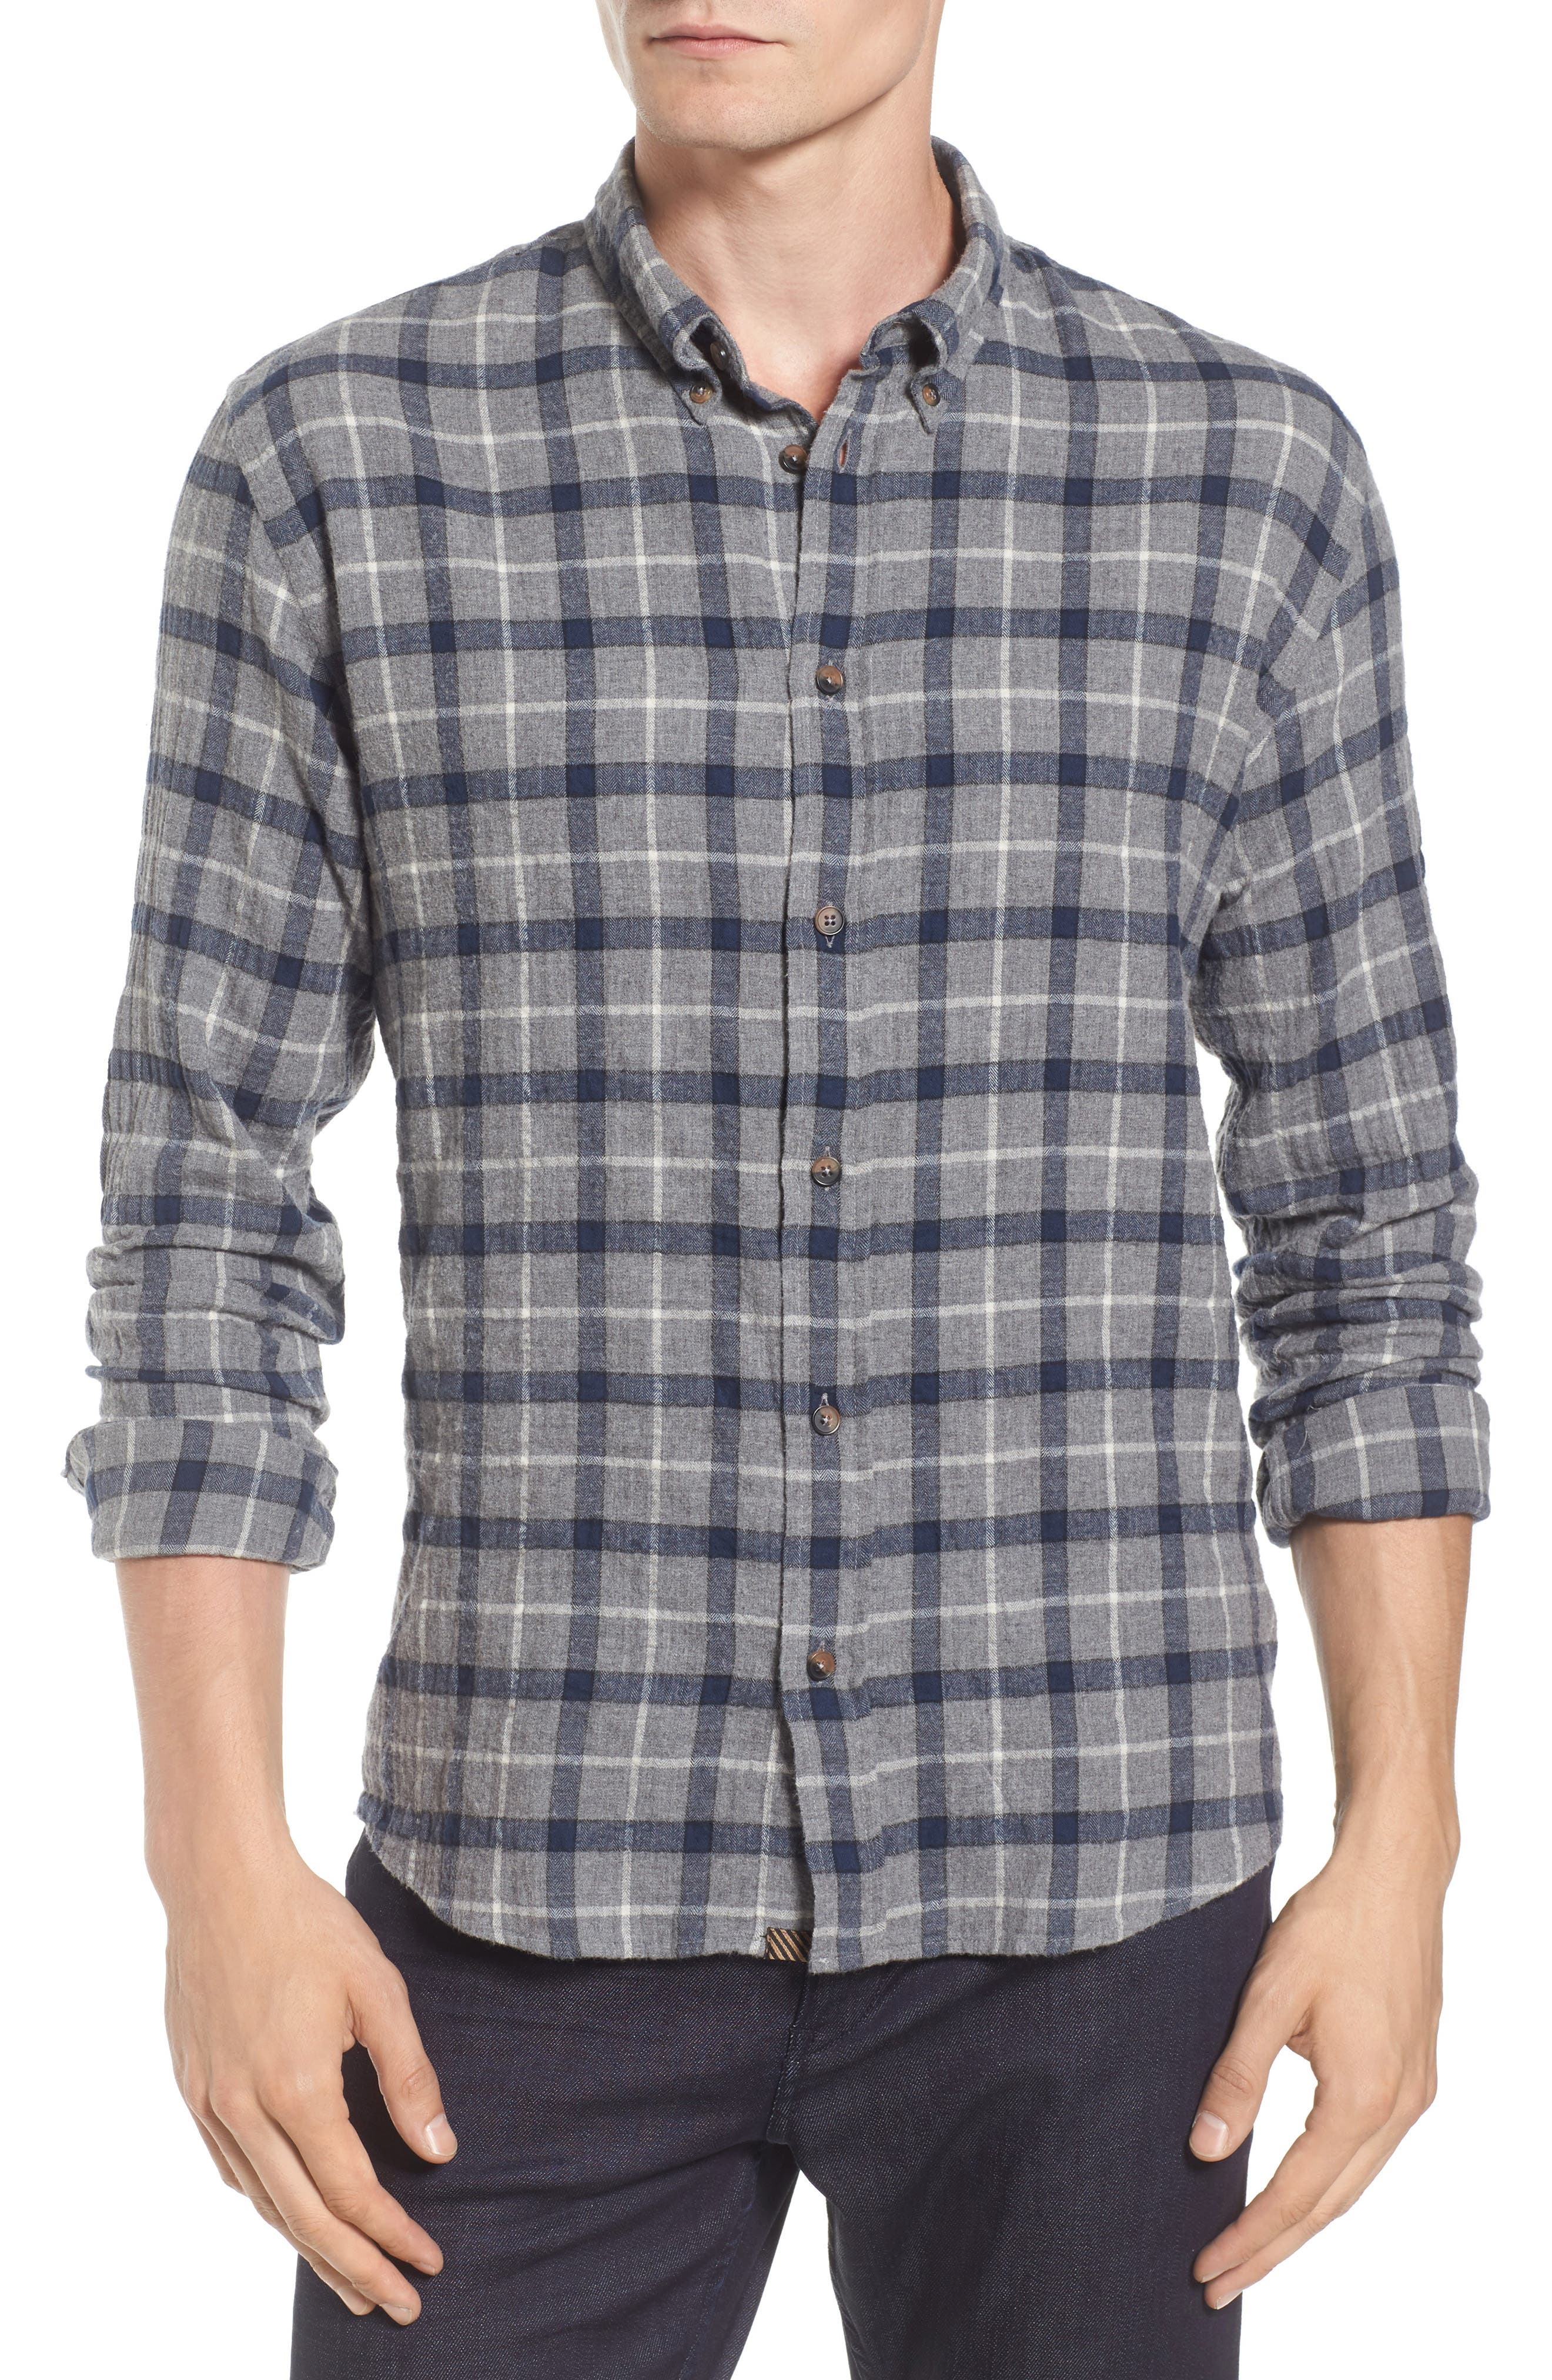 Murphy Slim Fit Plaid Sport Shirt,                         Main,                         color, Grey/ Navy